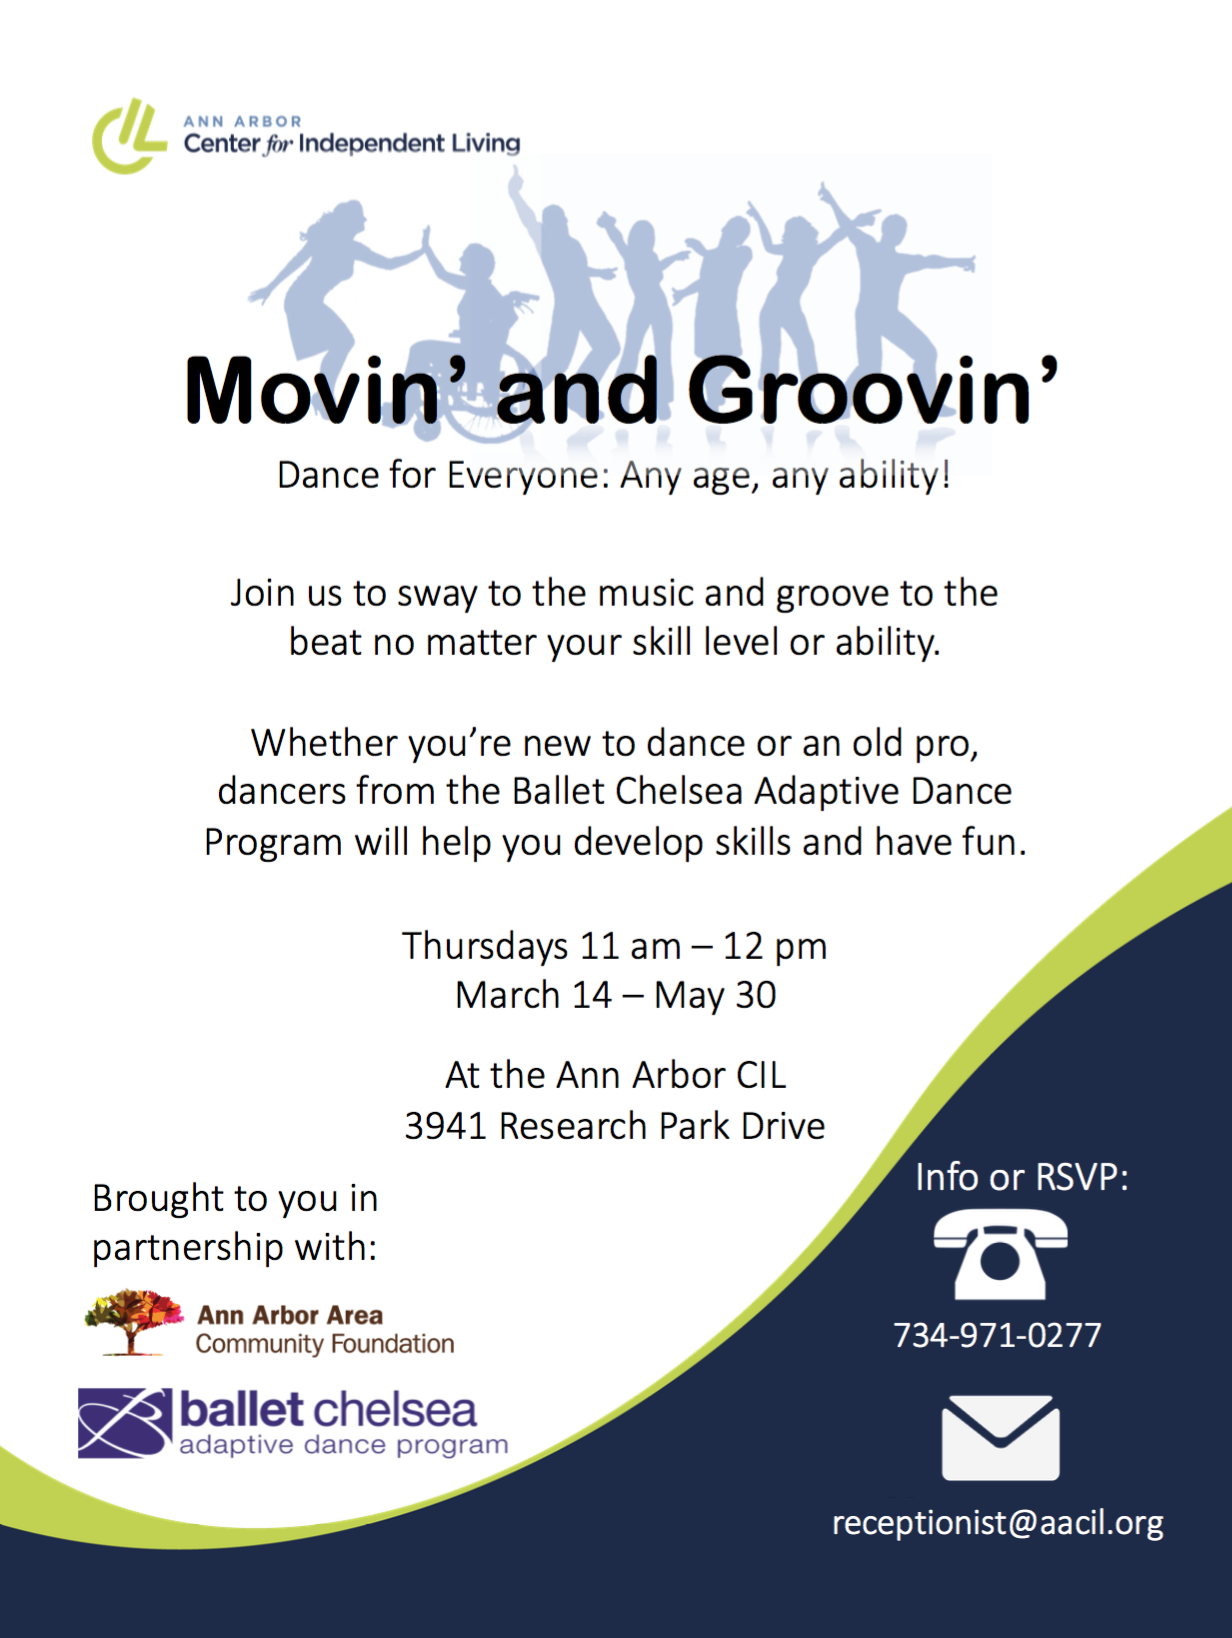 Movin' and Groovin' Program Brings Adaptive Dance